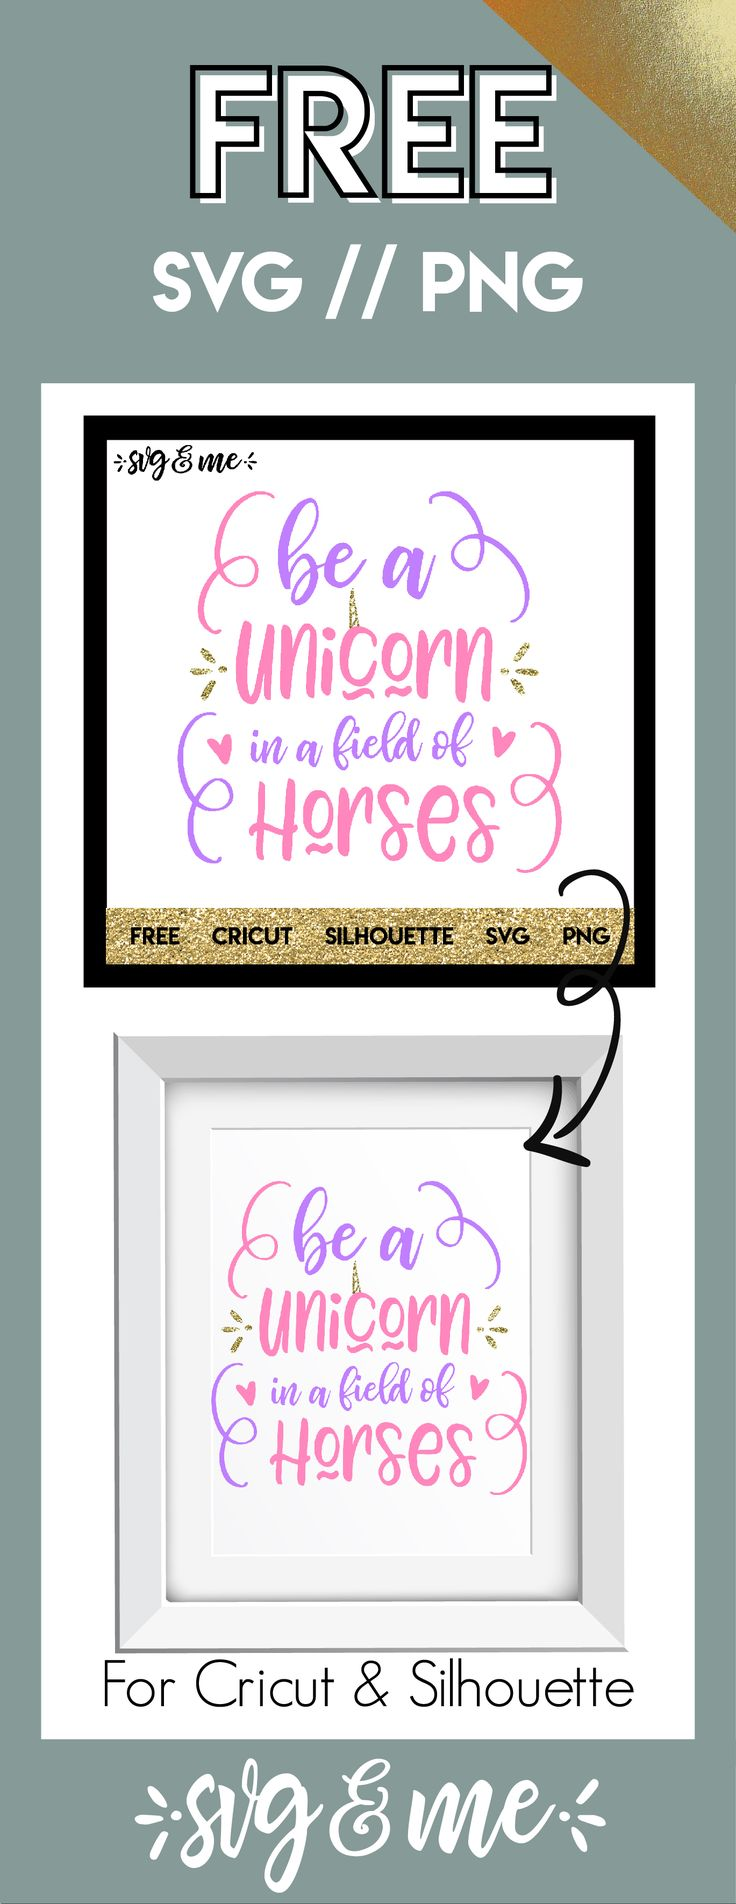 FREE SVG CUT FILE for Cricut, Silhouette and more - Be a Unicorn in a Field of Horses SVG #diy #cricut #silhouette #unicorn